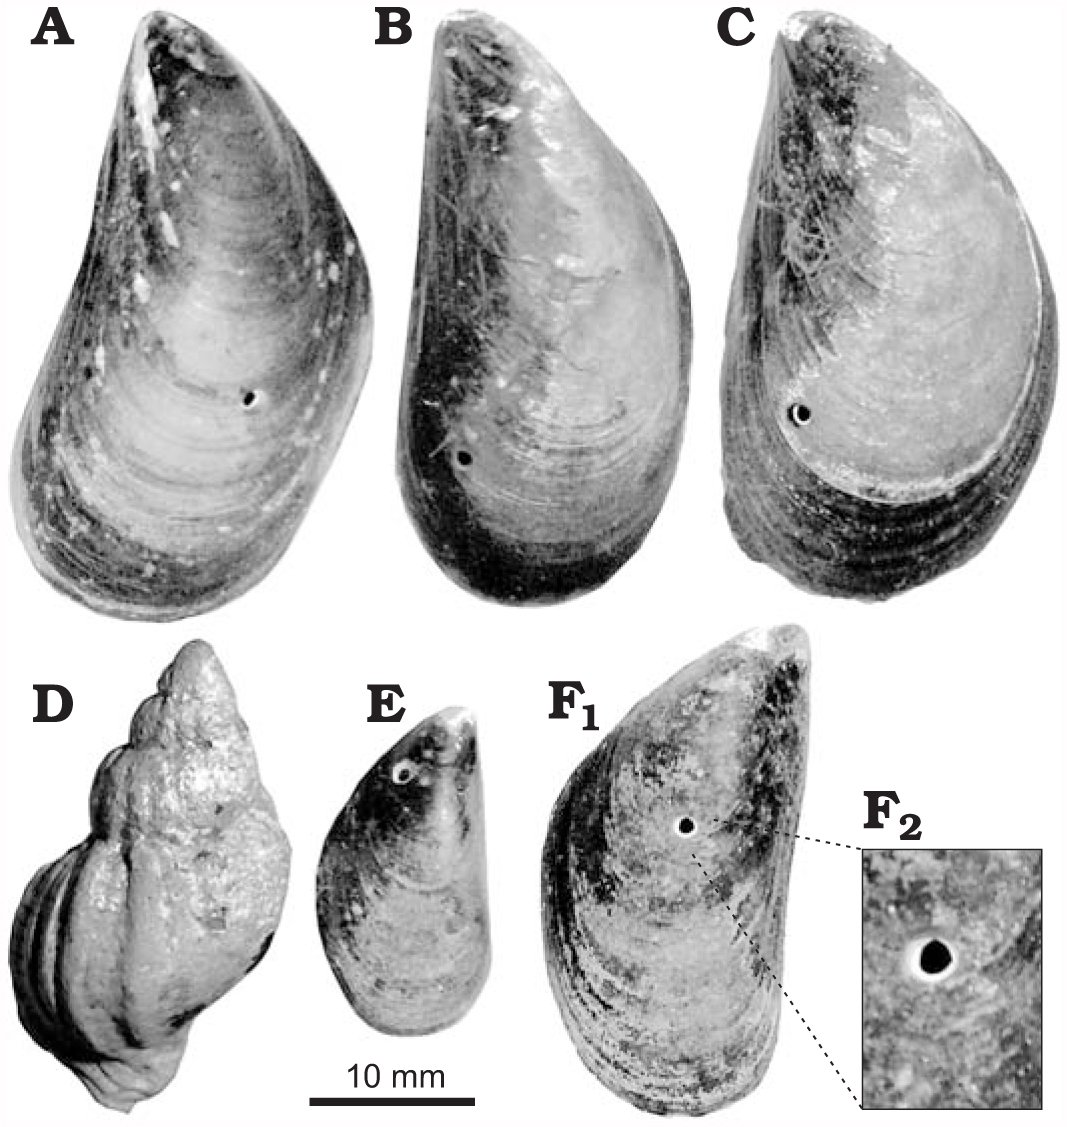 Predation by Drilling Gastropods and Asteroids Upon Mussels in Rocky